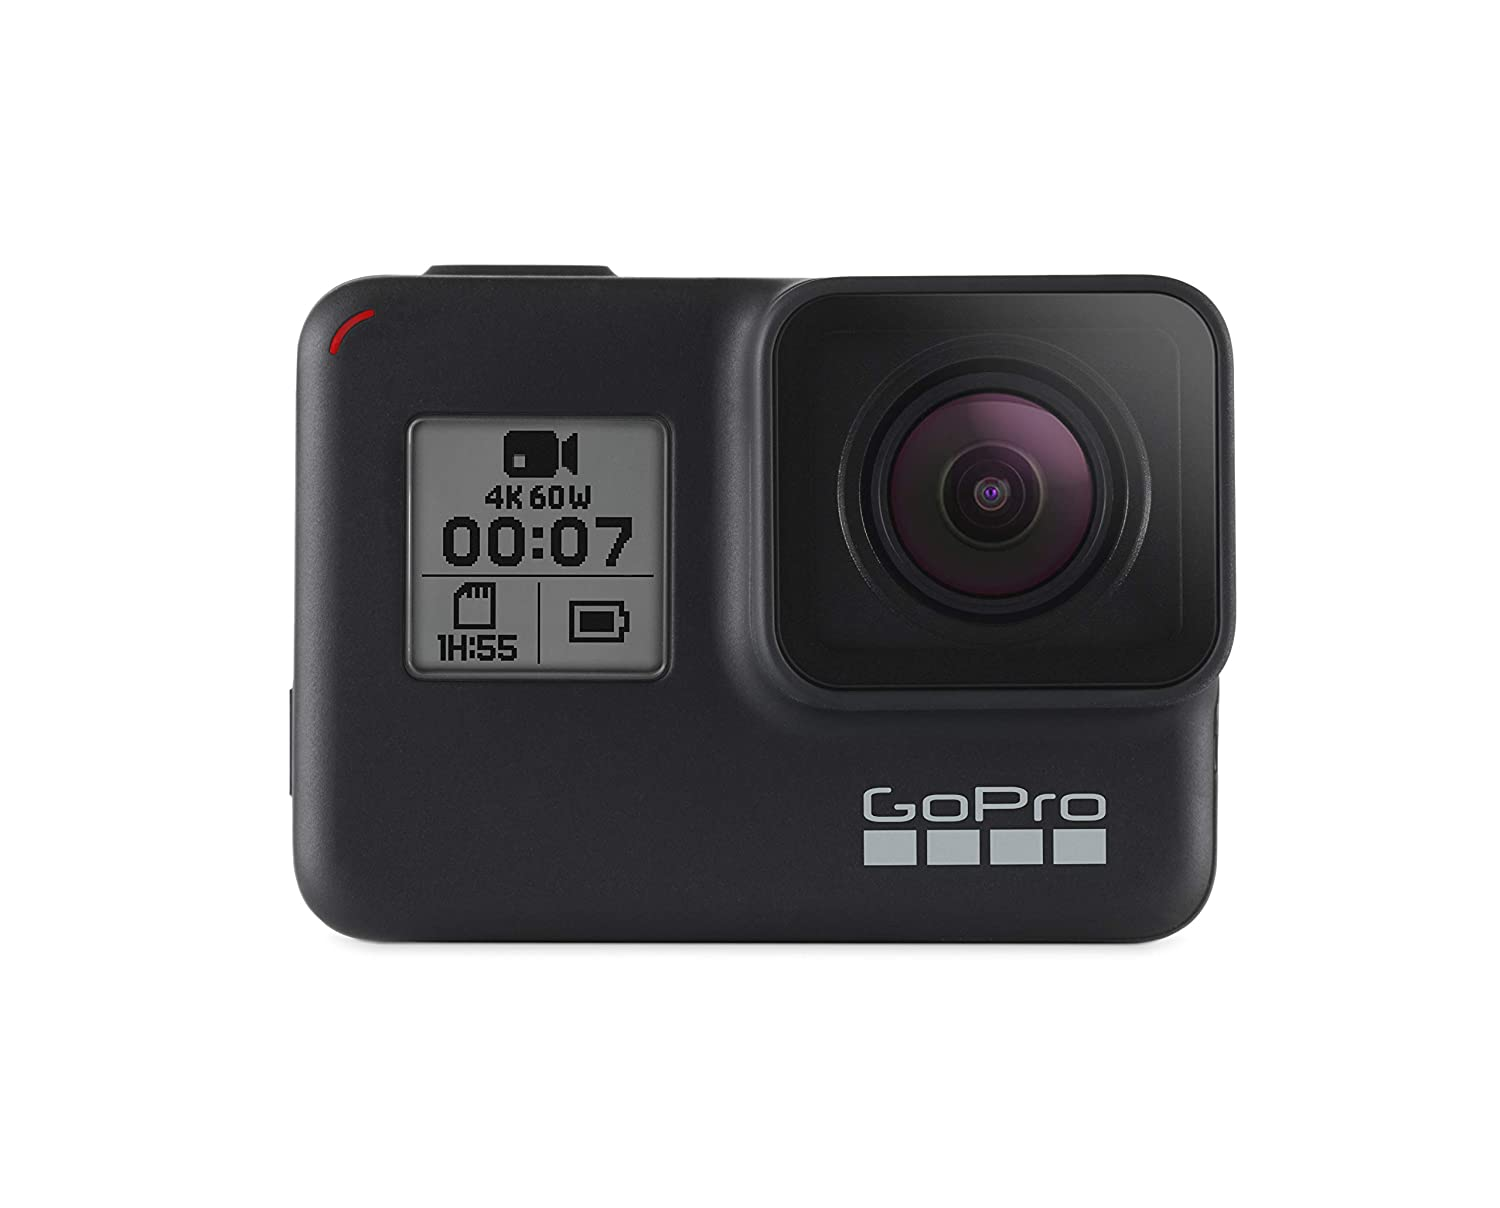 GoPro  HERO7  Black  -  Cámara  de  acción  (sumergible hasta 10m, pantalla  táctil,  vídeo  4K  HD,  fotos  de  12  MP,  transmisión